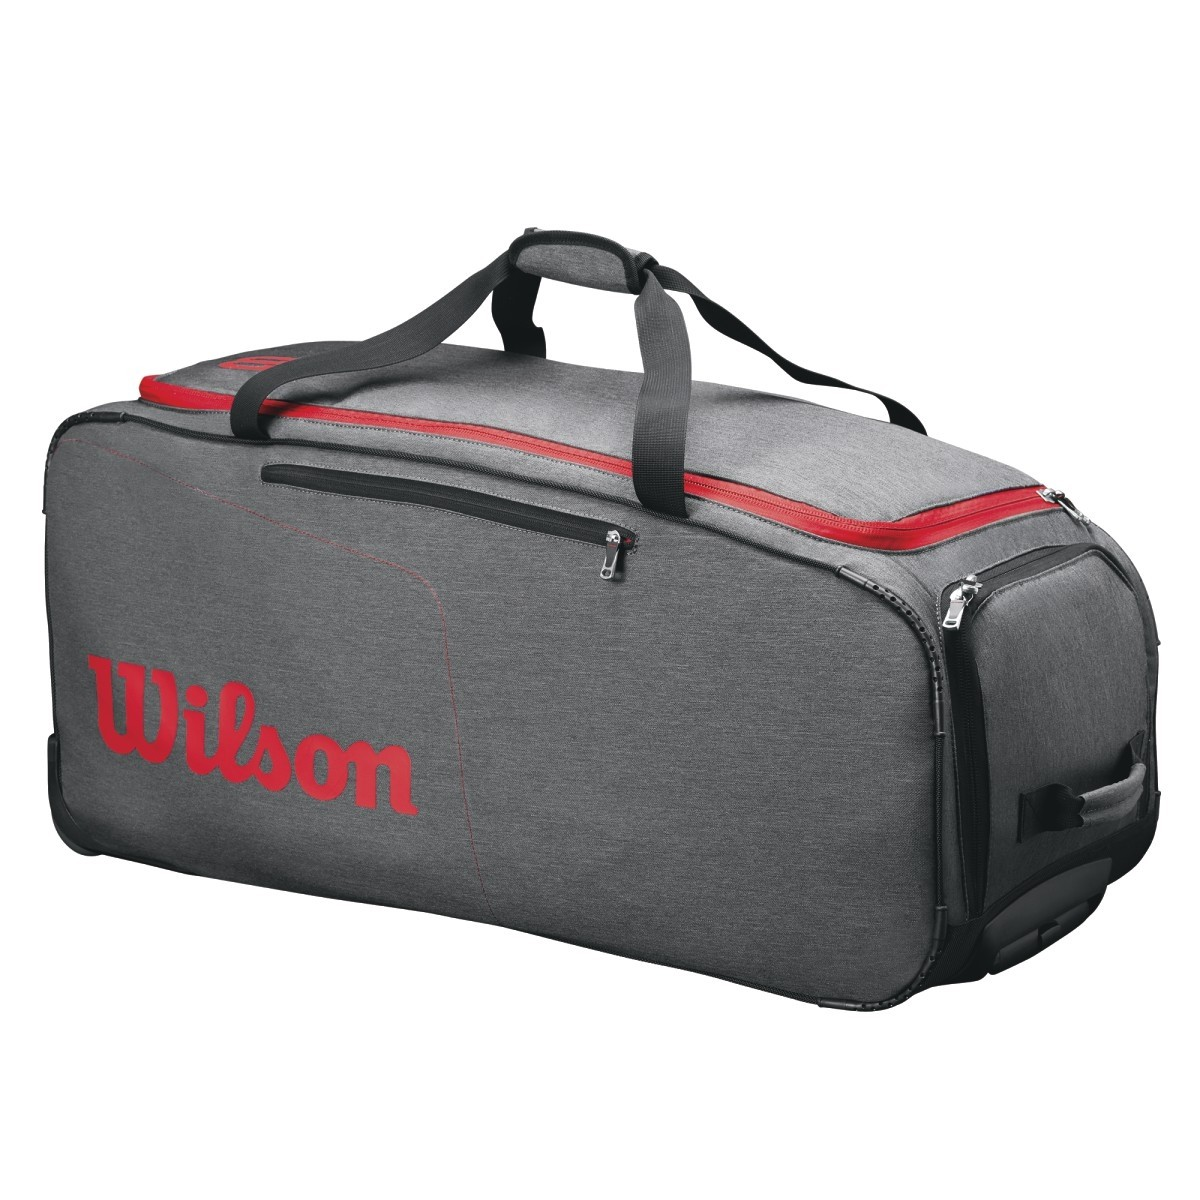 Wilson Travel Bag 2018 1